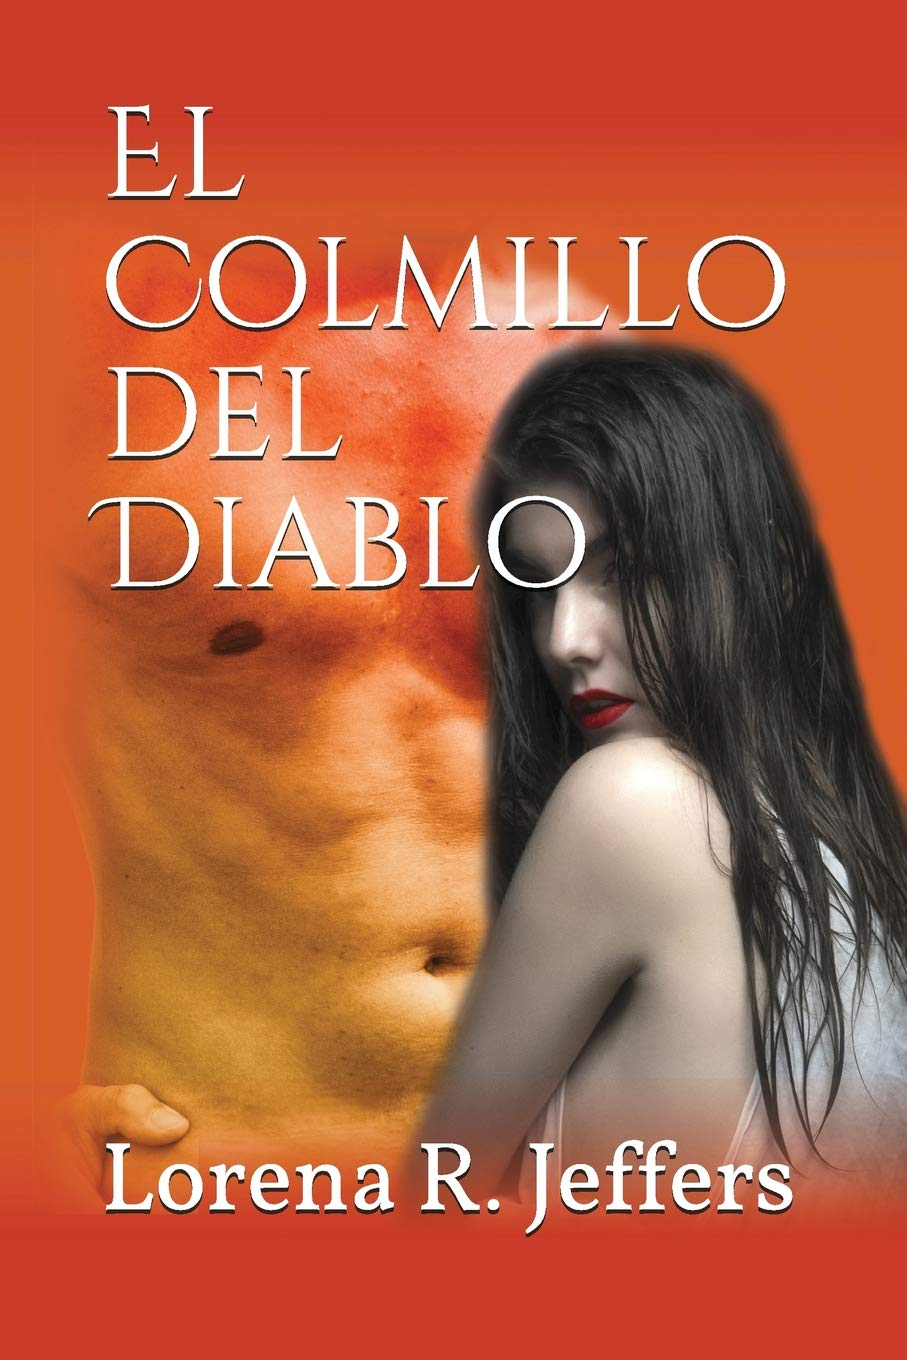 Amazon.com: El Colmillo del Diablo (Infernum) (Spanish Edition) (9781717984845): Lorena R. Jeffers: Books